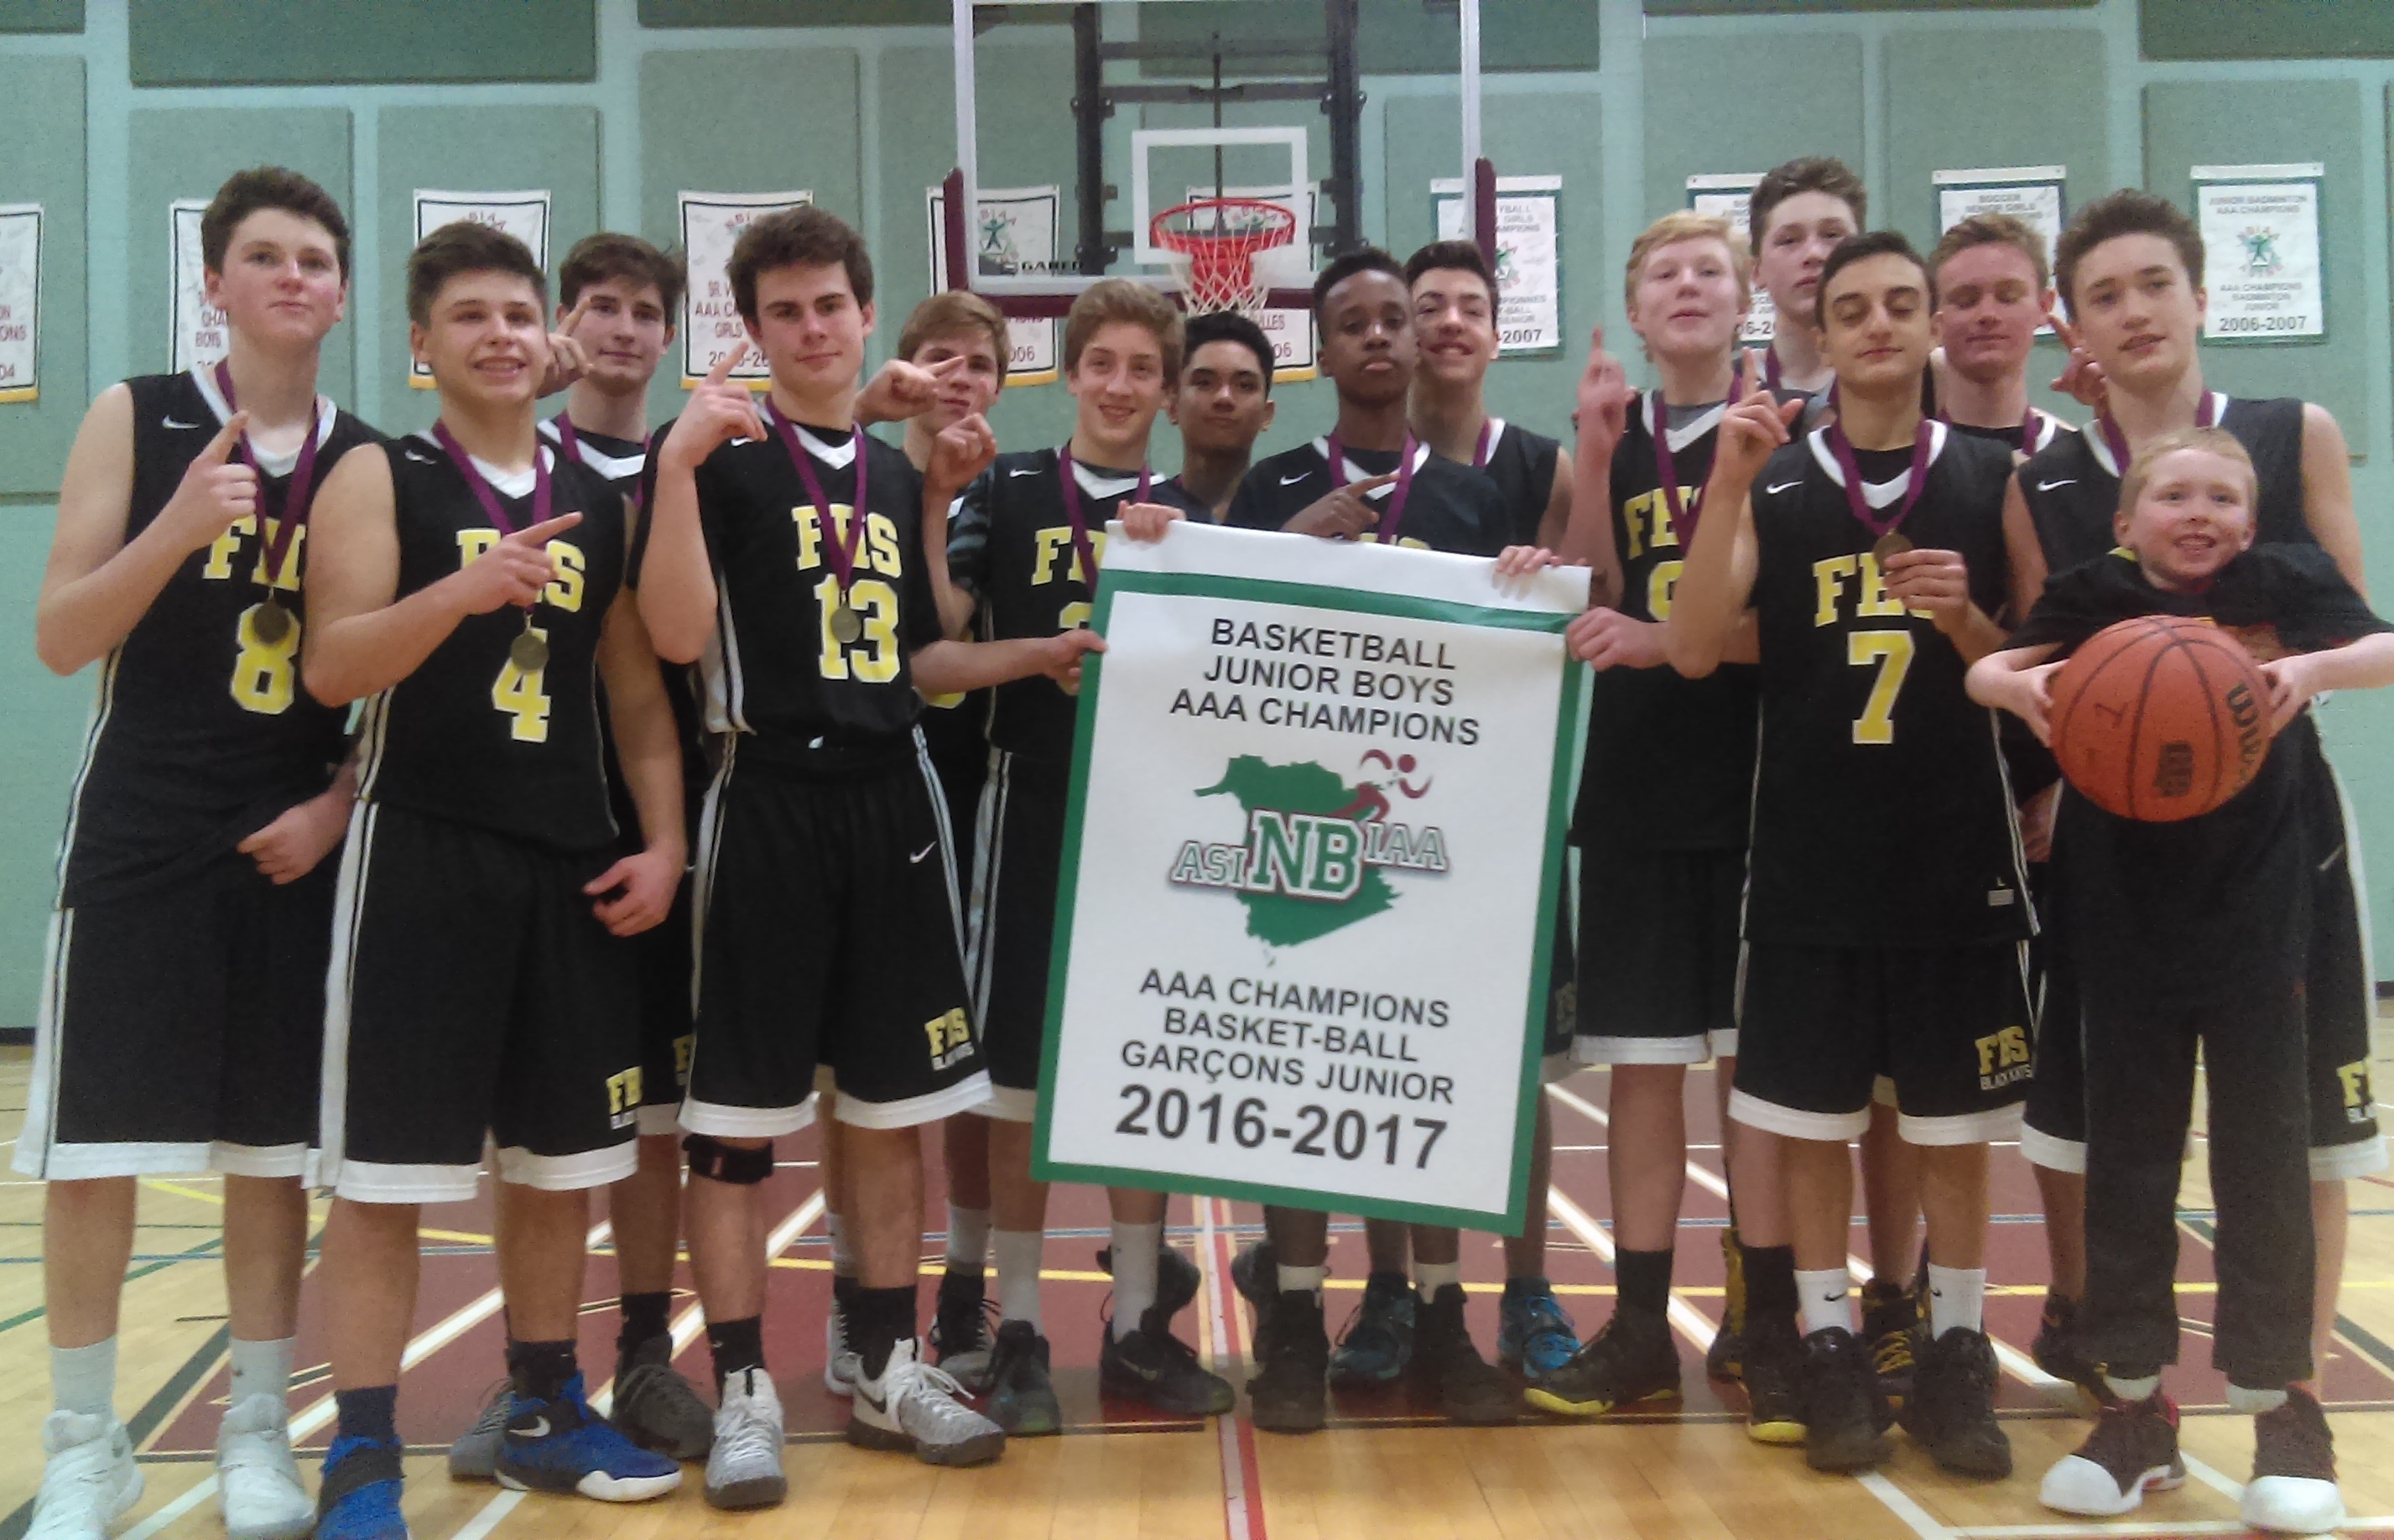 Bball - jr boys aaa champs - fhs